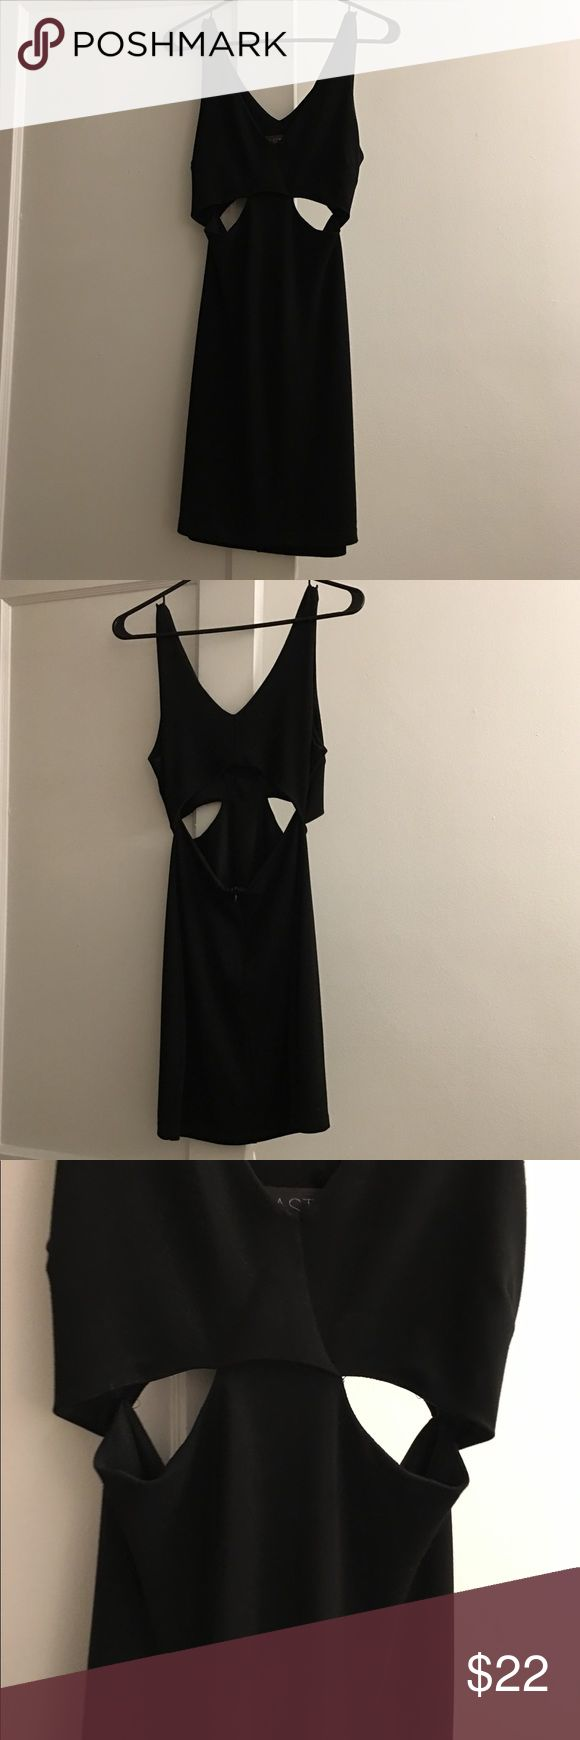 The perfect LBD! Tight black dress with cut outs on side and in back. Very flattering material. Bought from TopShop. Size M ! Astr Dresses Mini